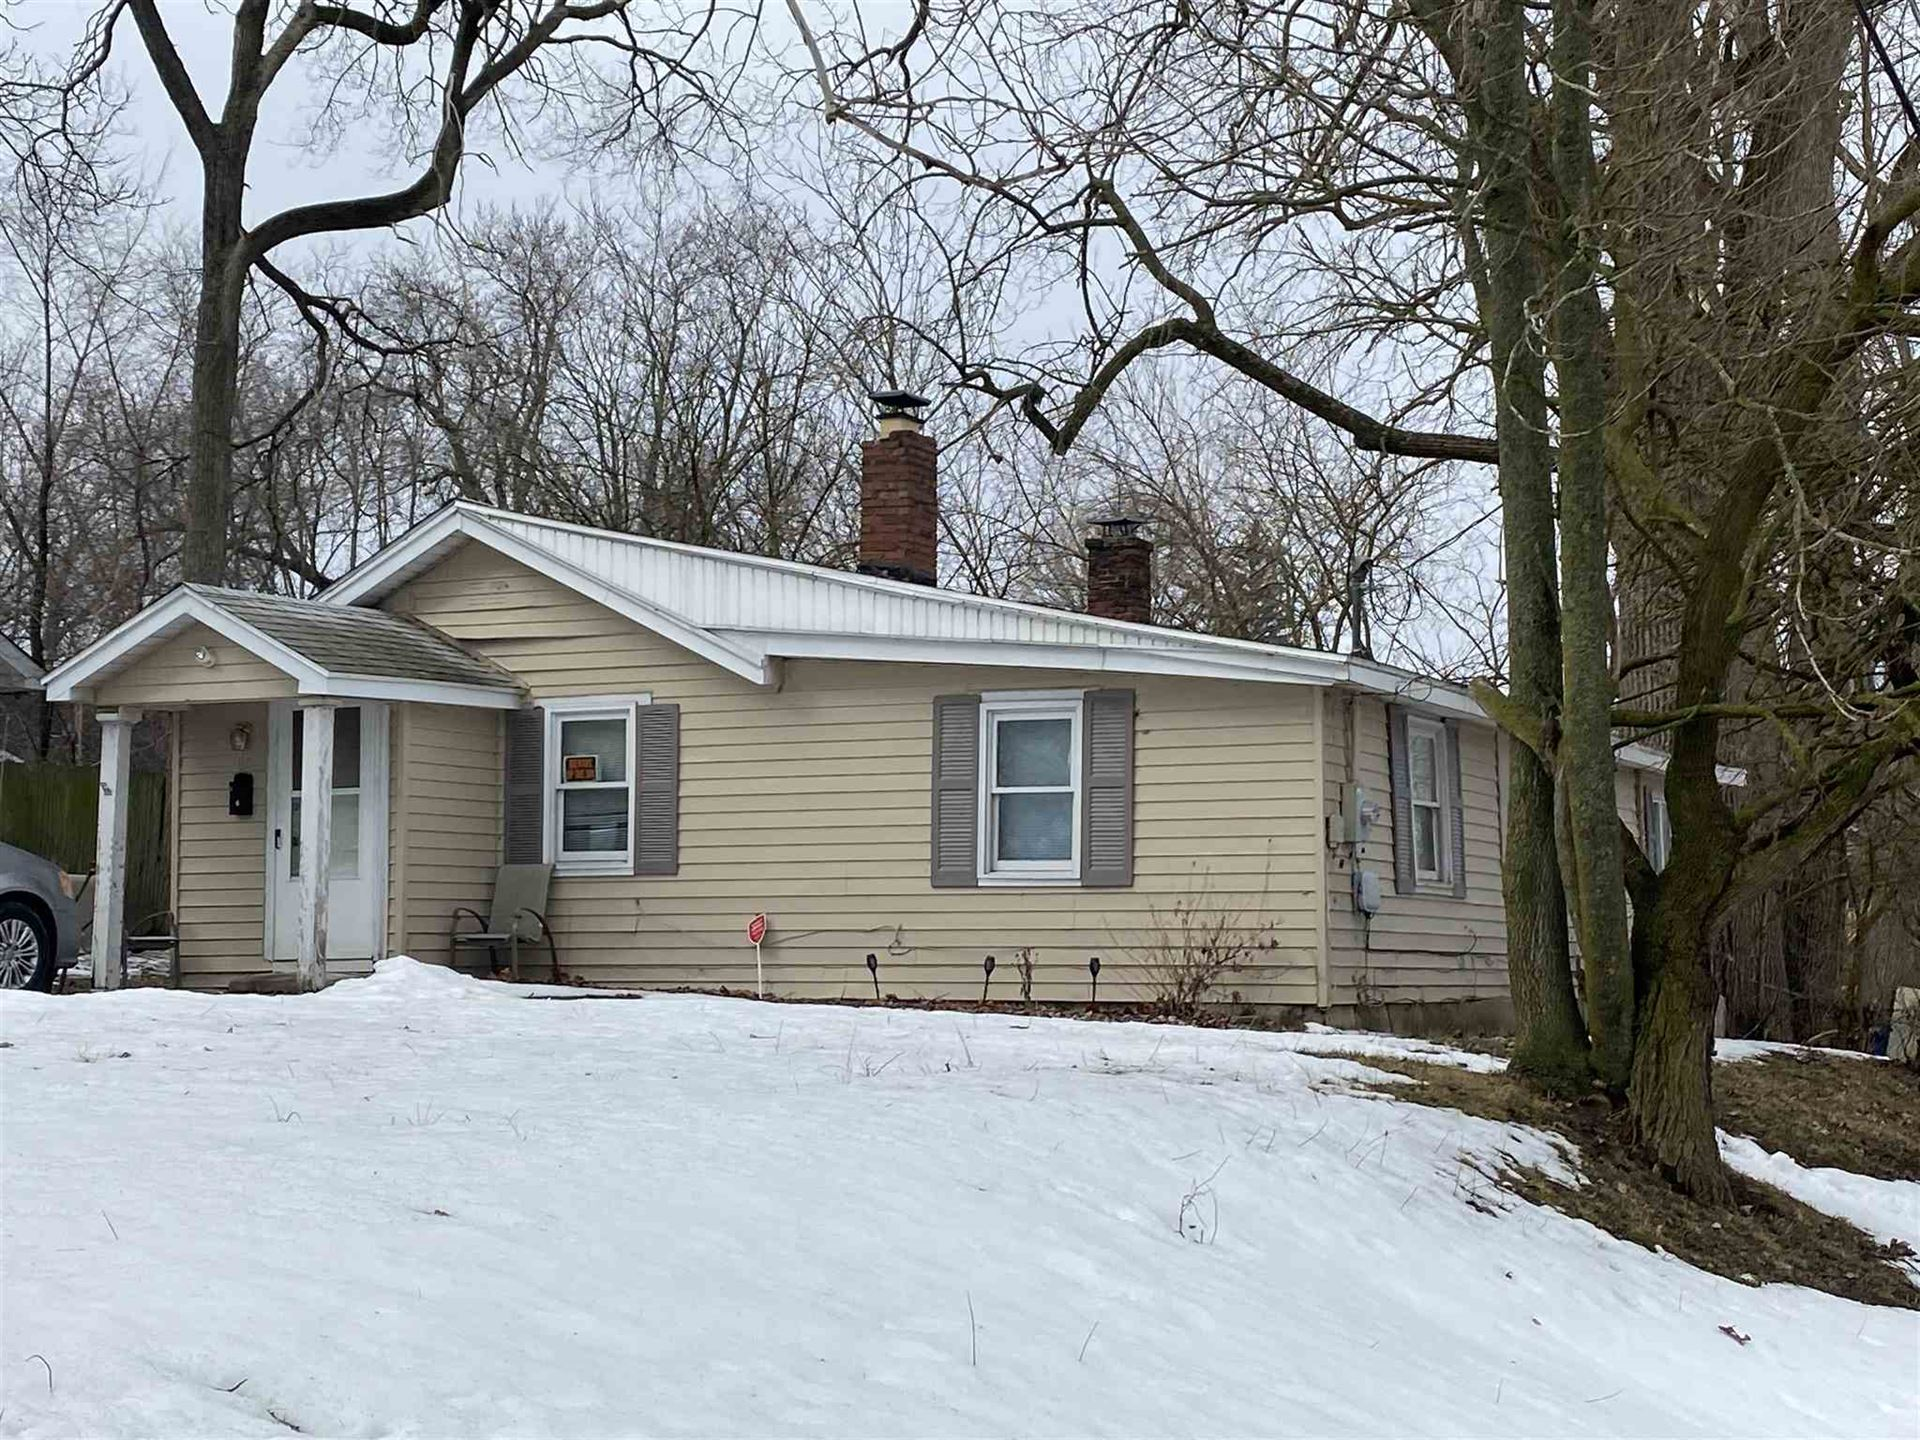 607 N OHIO Street, Kokomo, IN 46901 - MLS#: 202106411